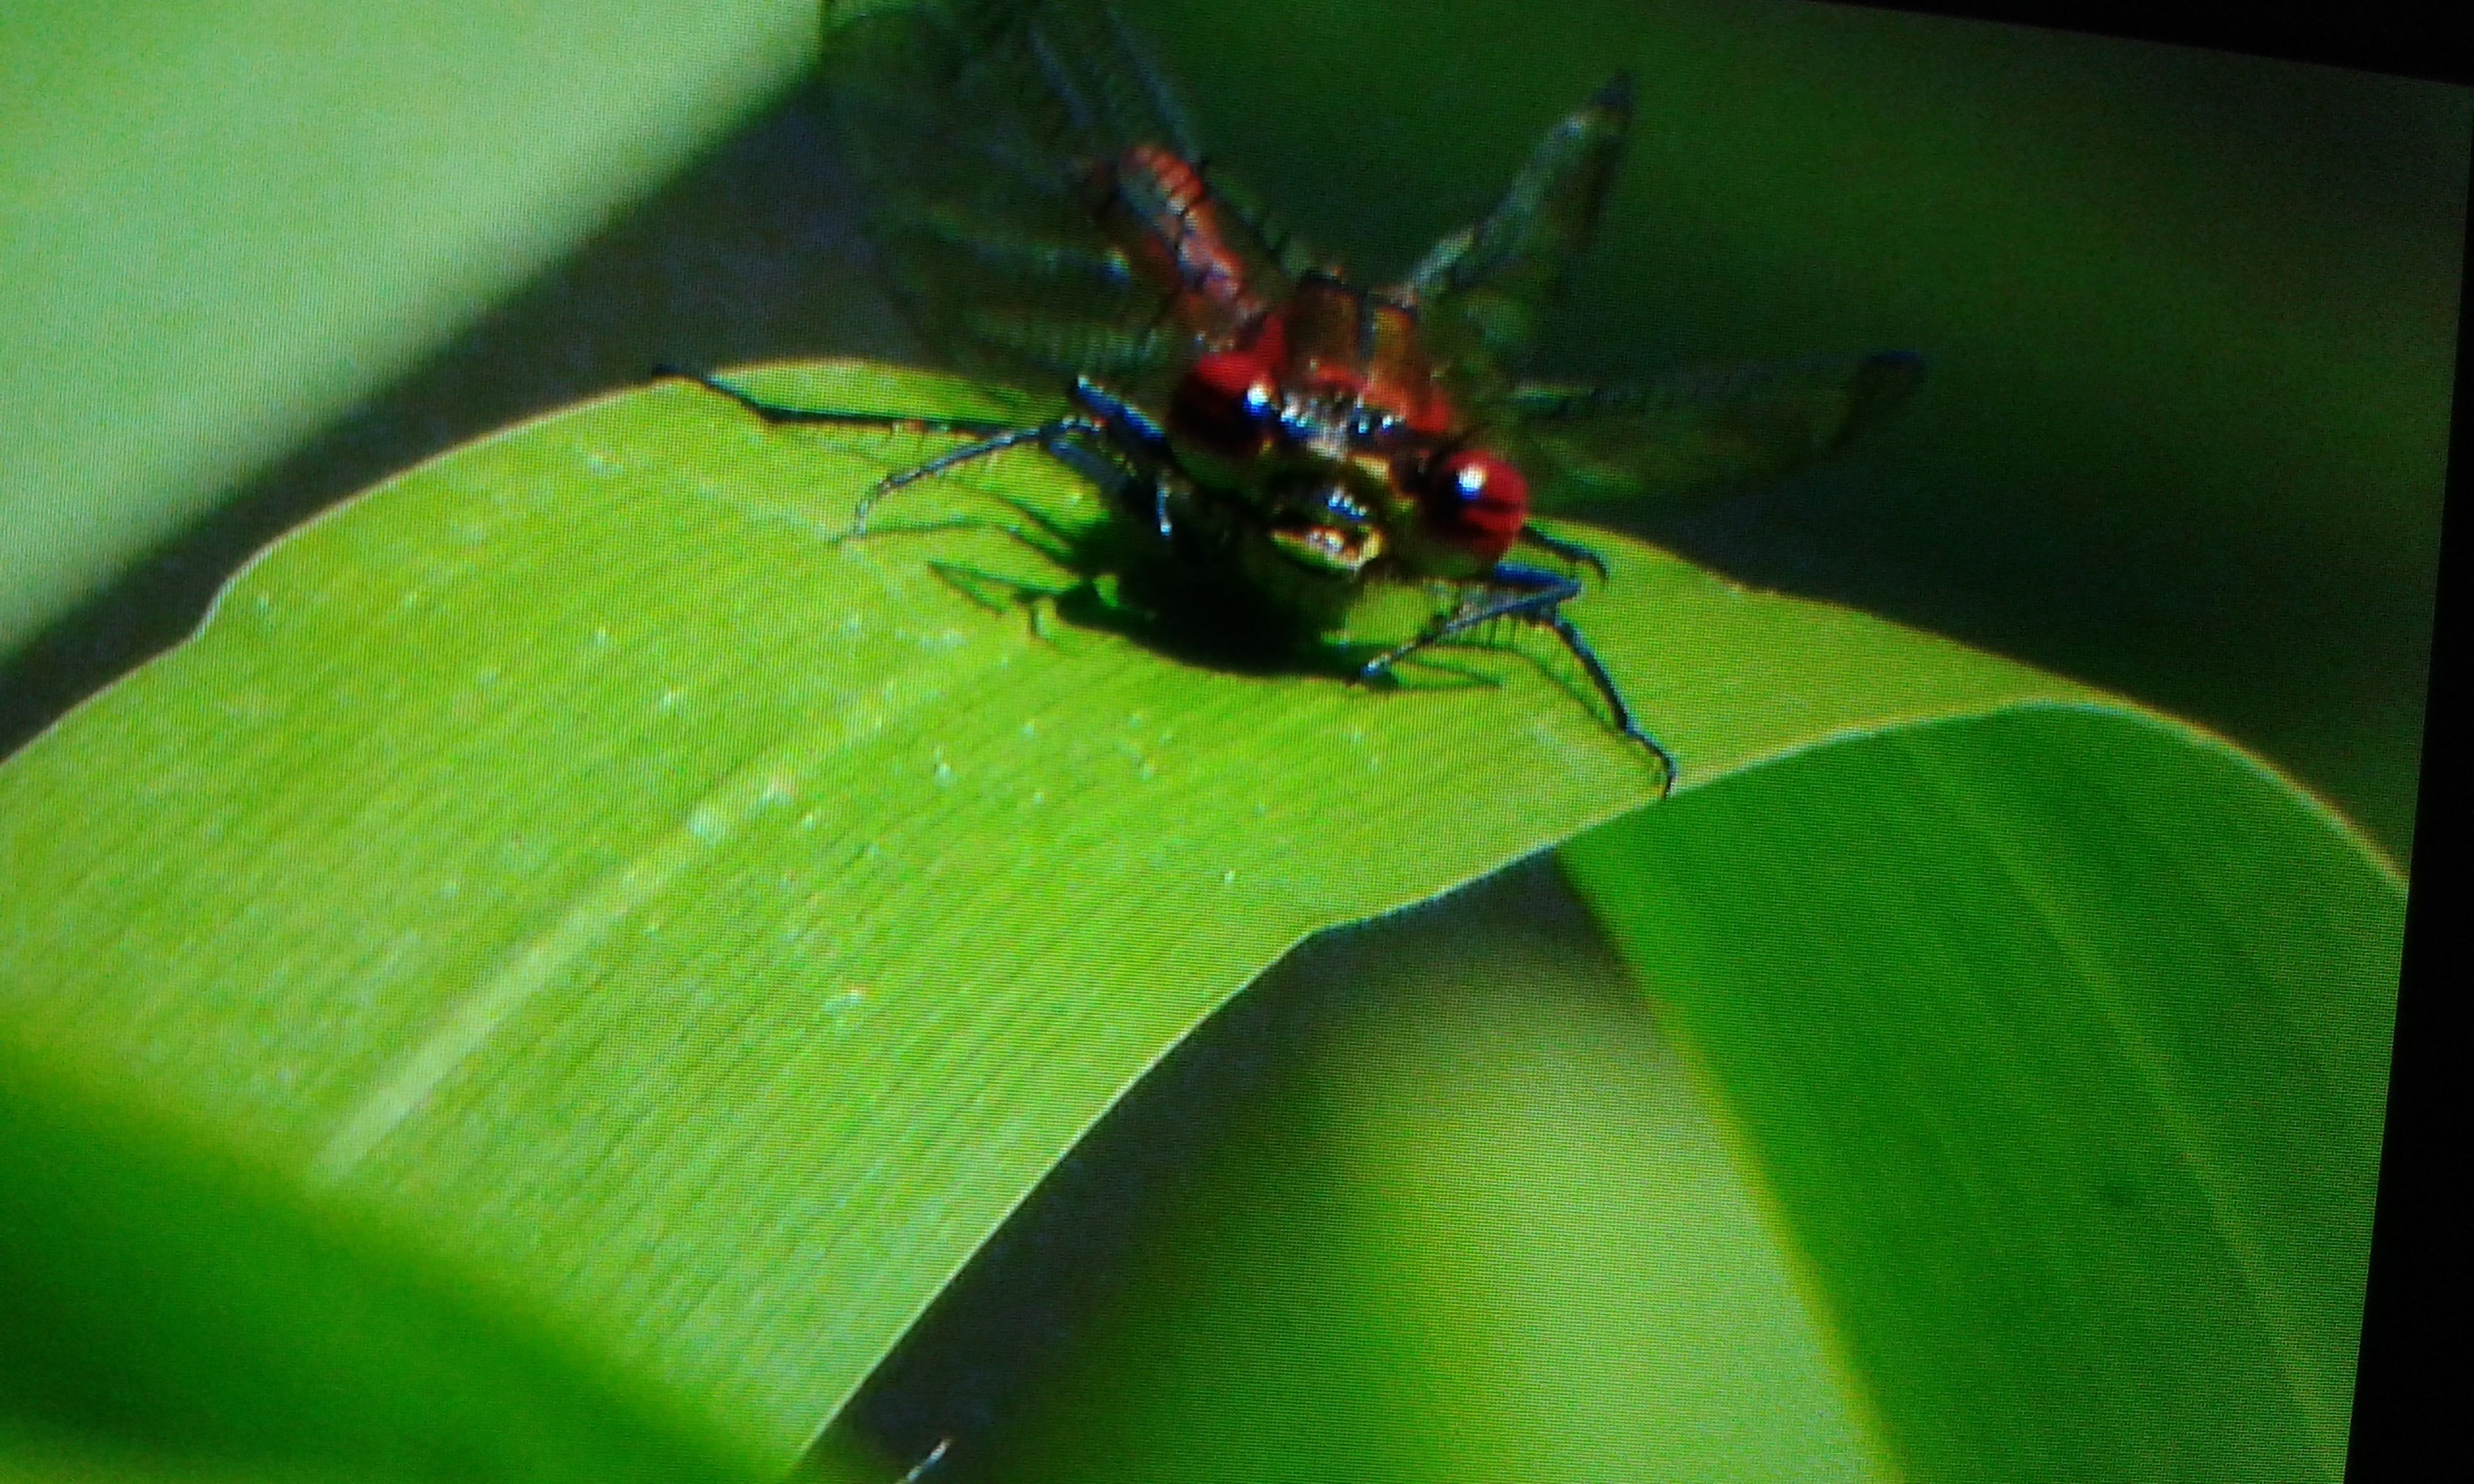 insect, one animal, animal themes, close-up, green color, indoors, selective focus, animals in the wild, spider, wildlife, no people, focus on foreground, black color, pattern, high angle view, day, nature, macro, extreme close-up, full frame